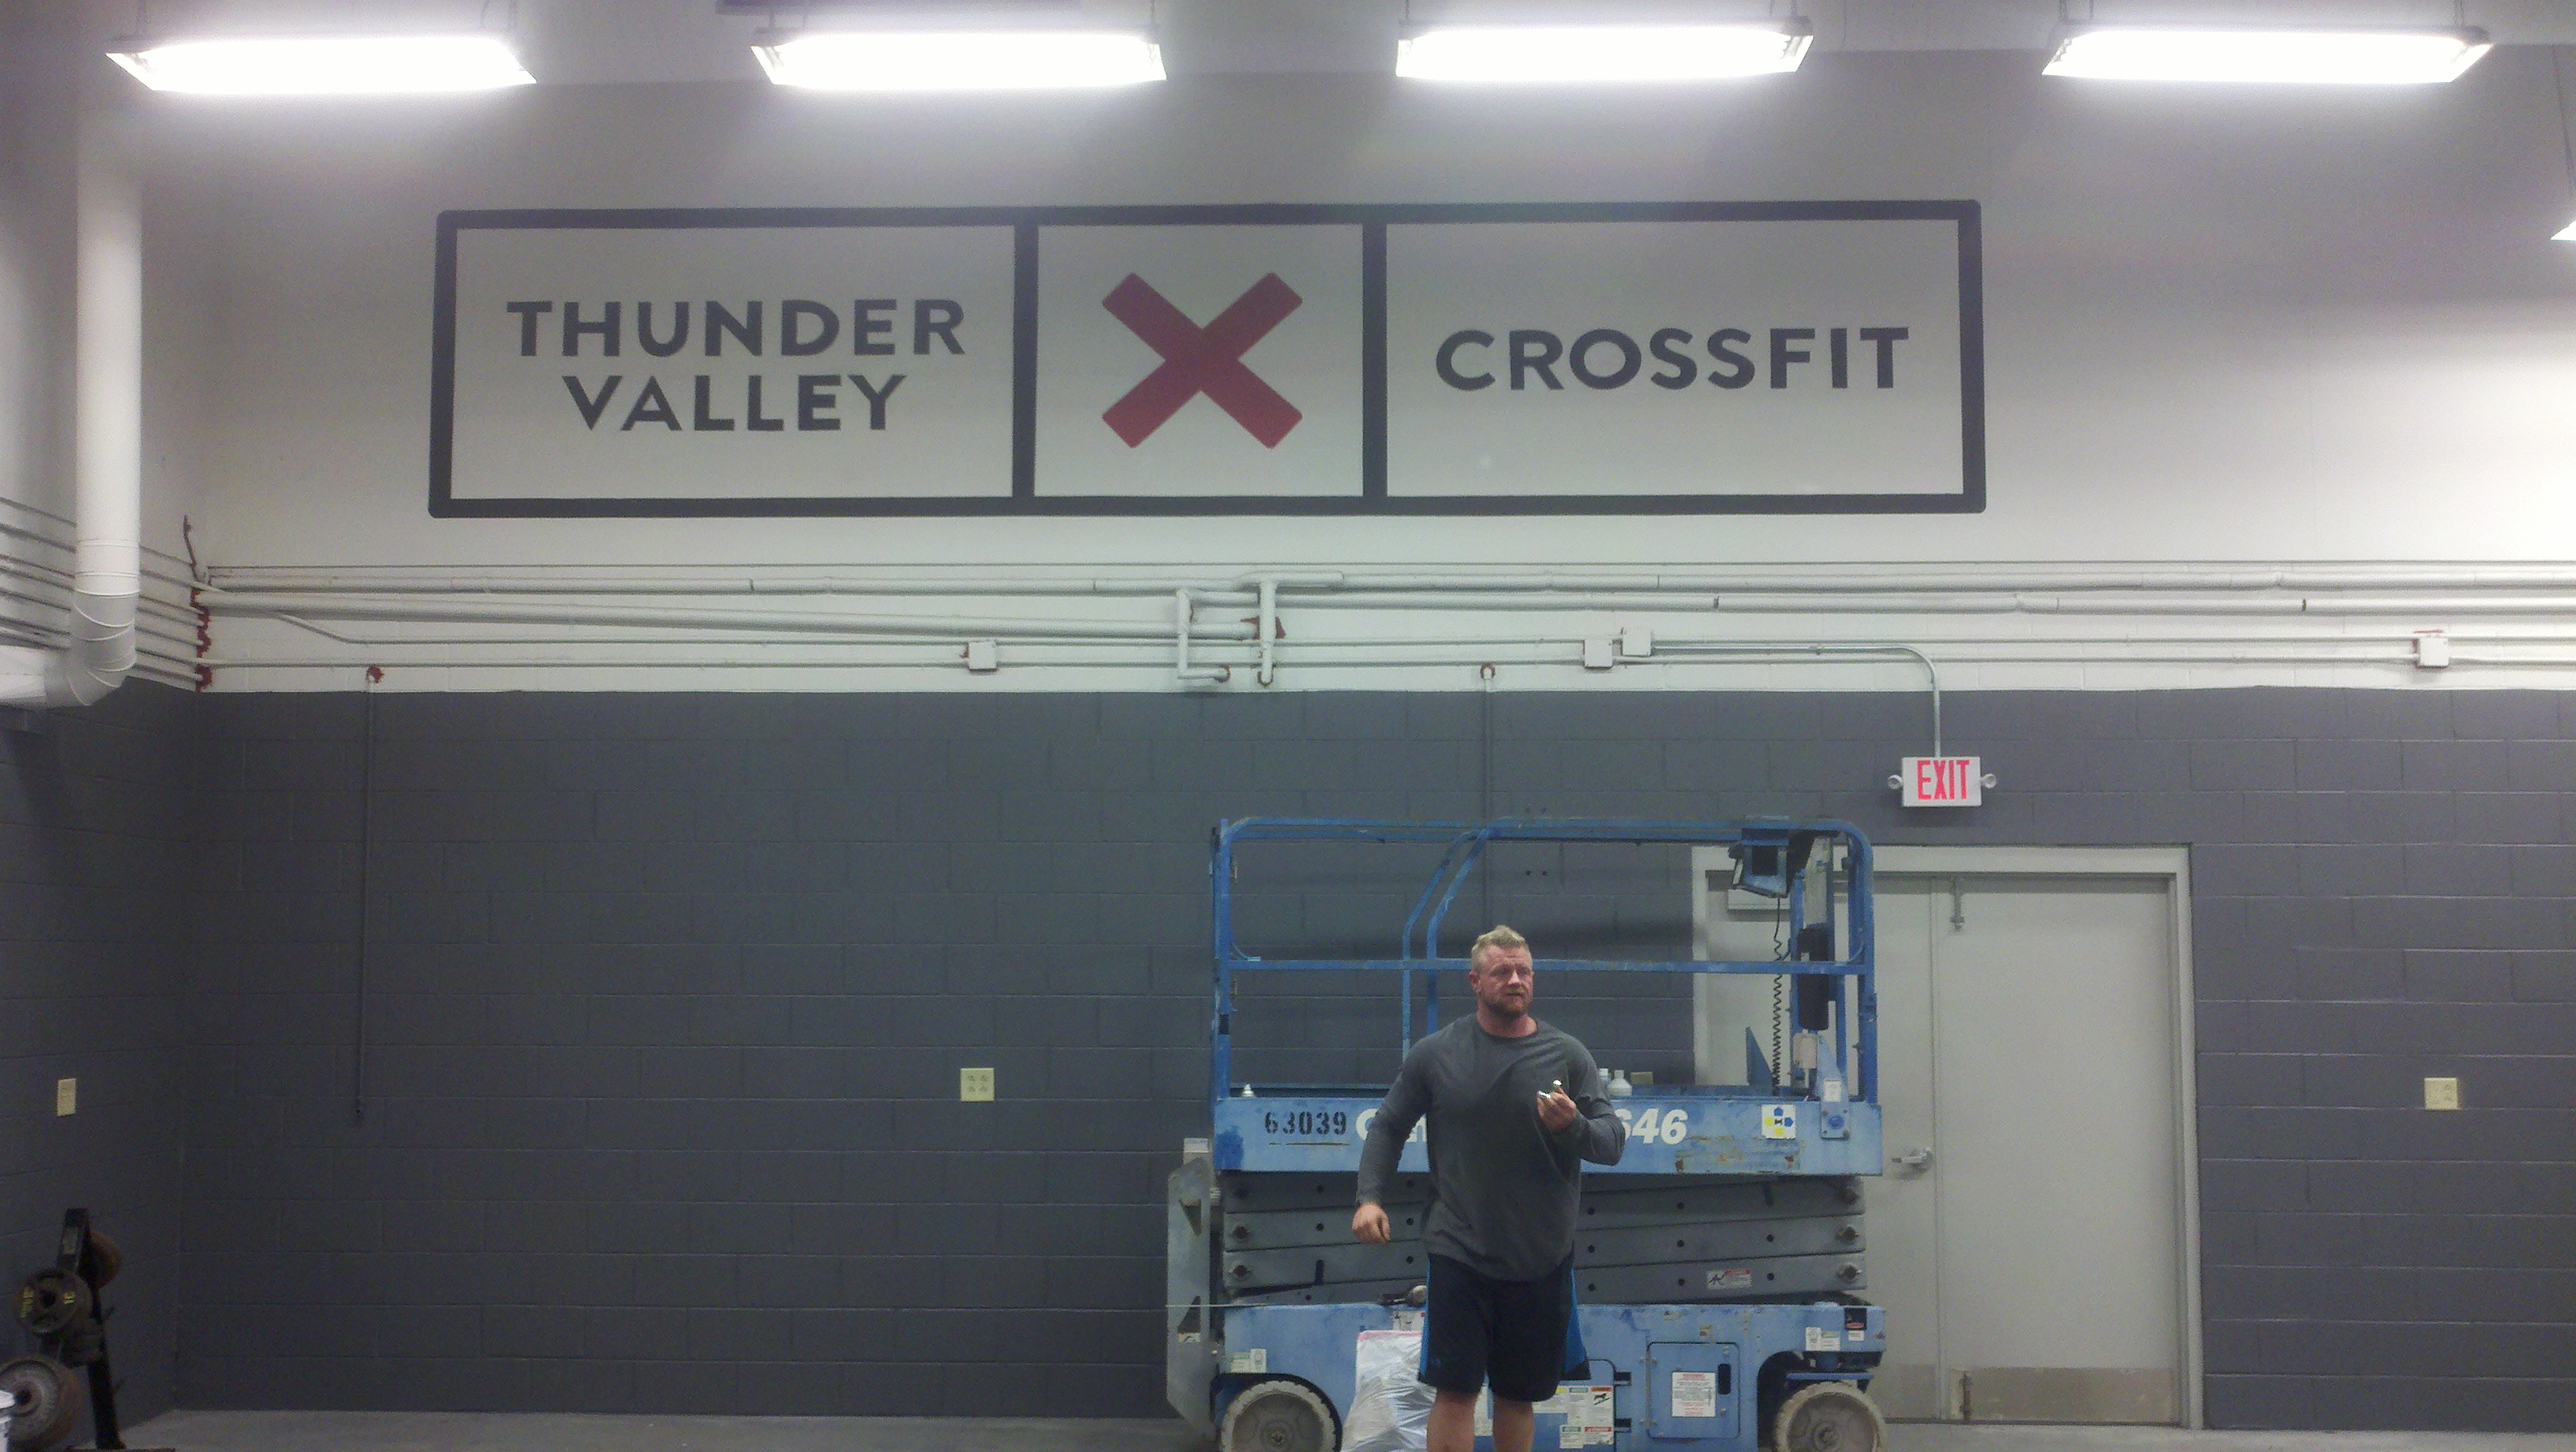 Thunder Valley CrossFit Logo